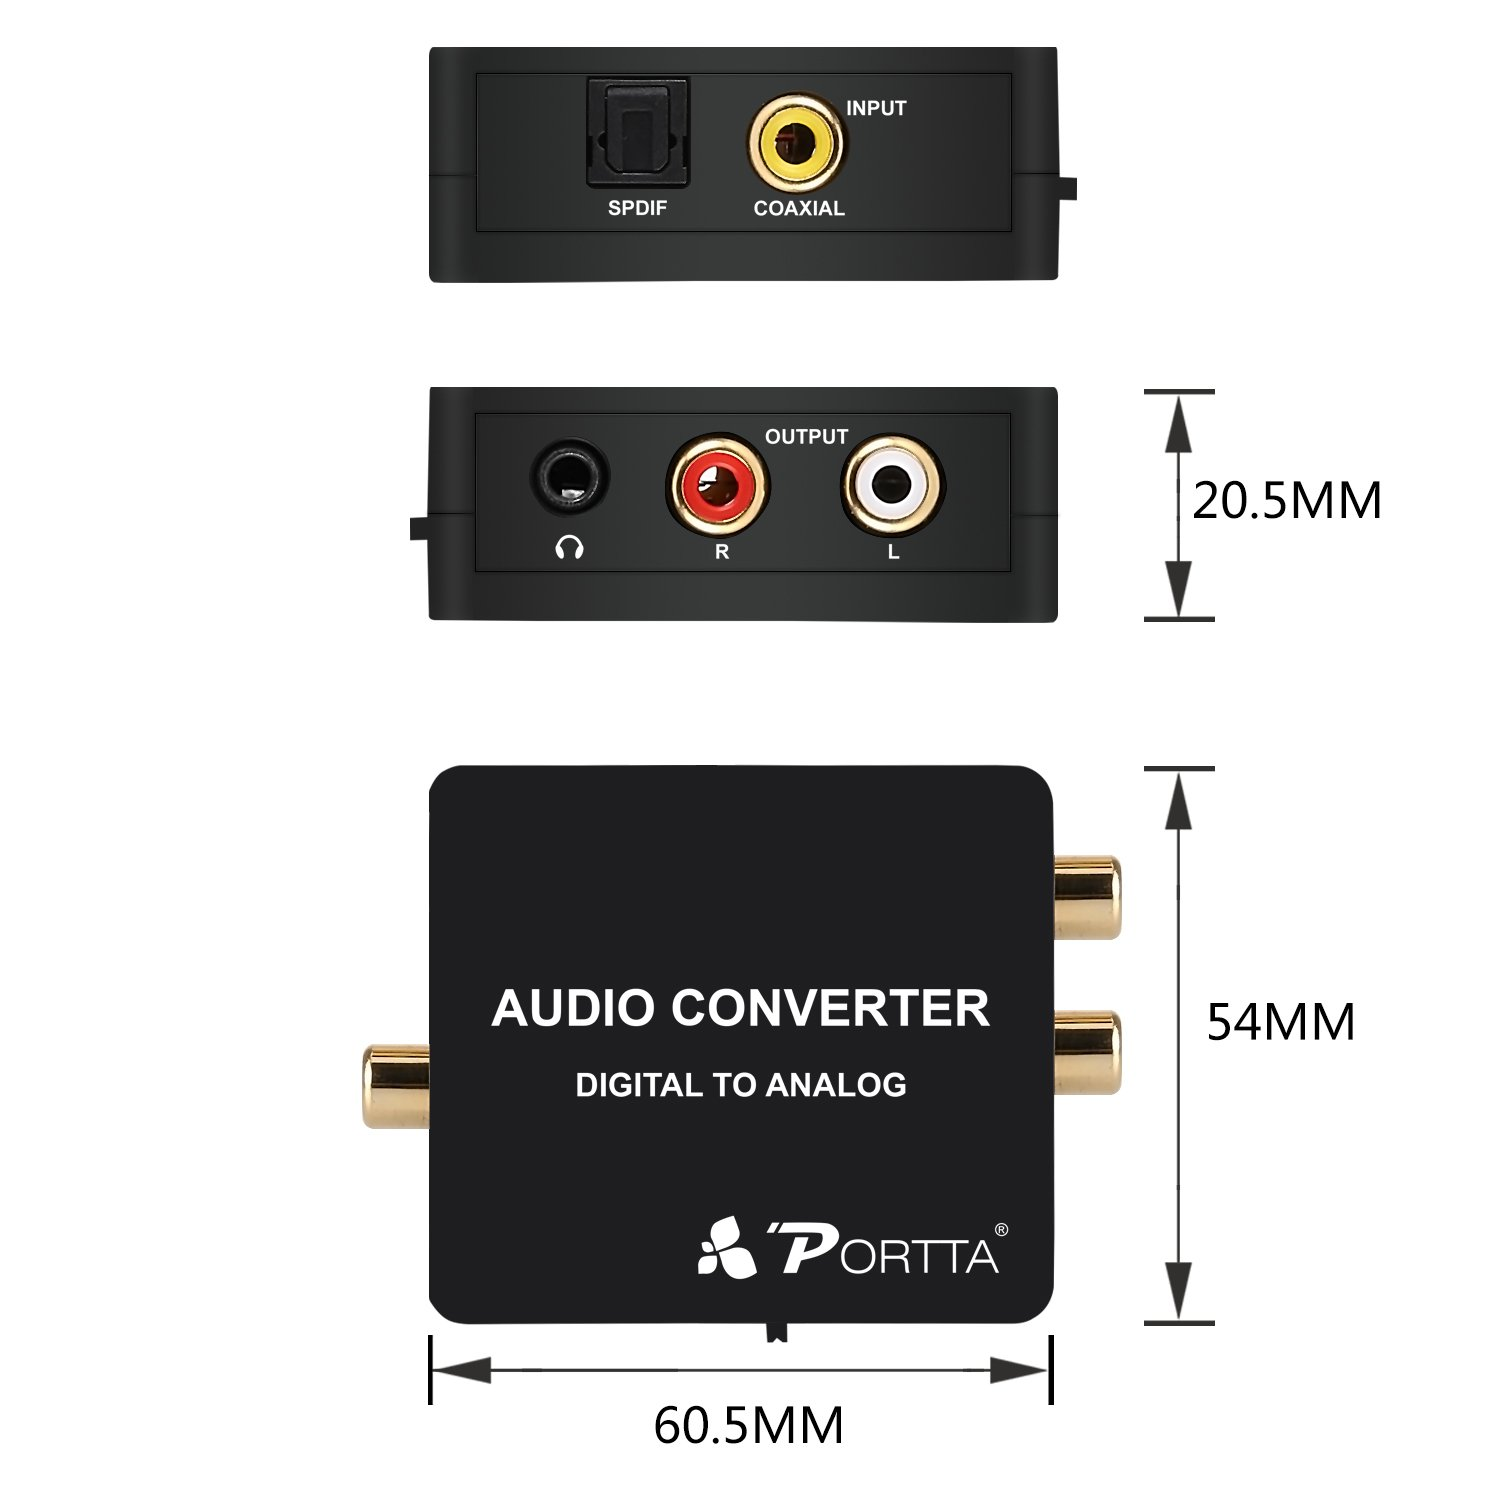 Portta Audio Converter Digital a Analógico Convertior Toslink Digital Coax to Analog RL y 3,5mm Jack Apoyar la Salida de Altavoz del Auricular: Amazon.es: ...